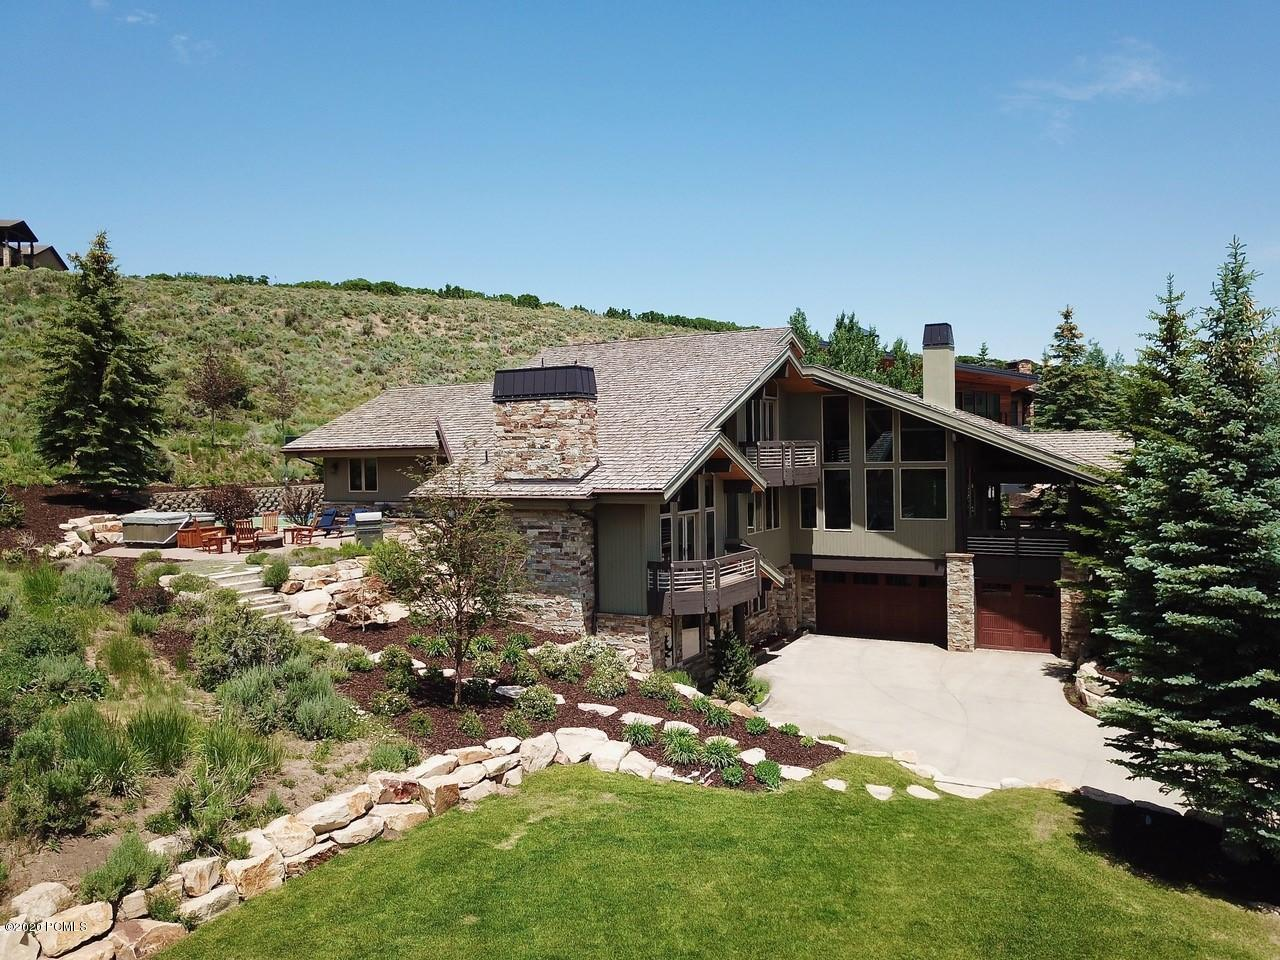 15 Ashley Court, Park City, Utah 84060, 5 Bedrooms Bedrooms, ,6 BathroomsBathrooms,Single Family,For Sale,Ashley,20190109112430415765000000